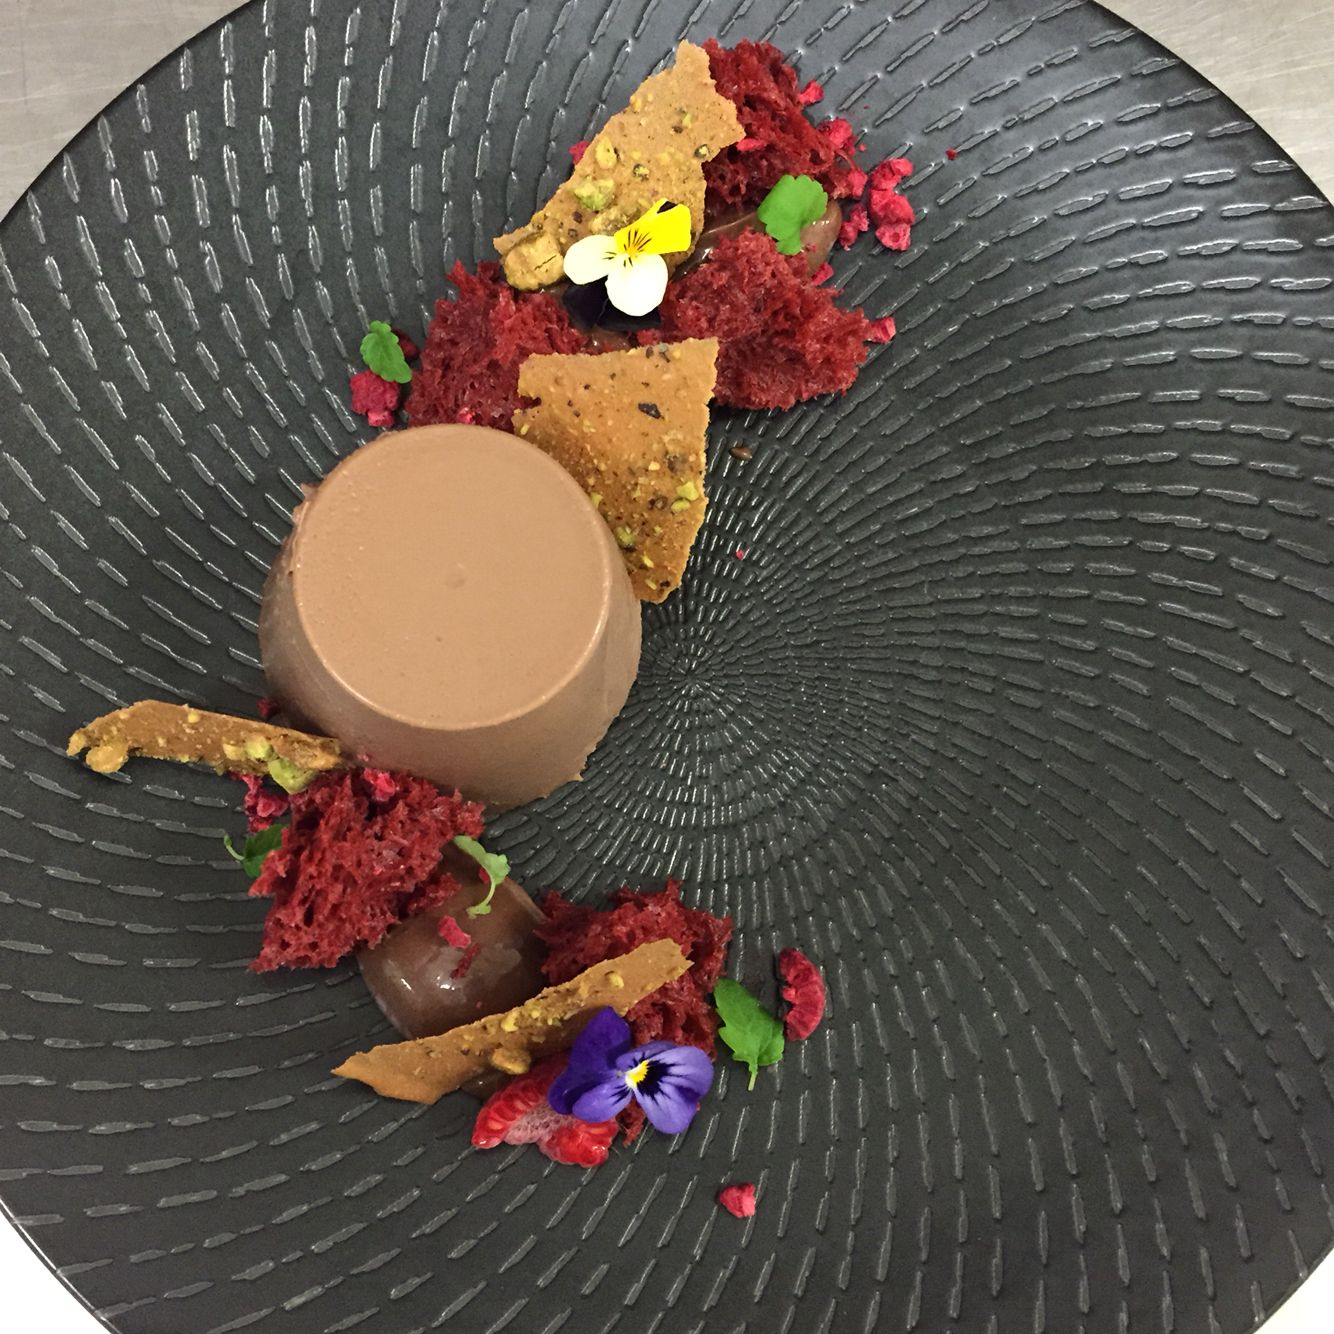 Desserts plate up #panacotta #chocolate